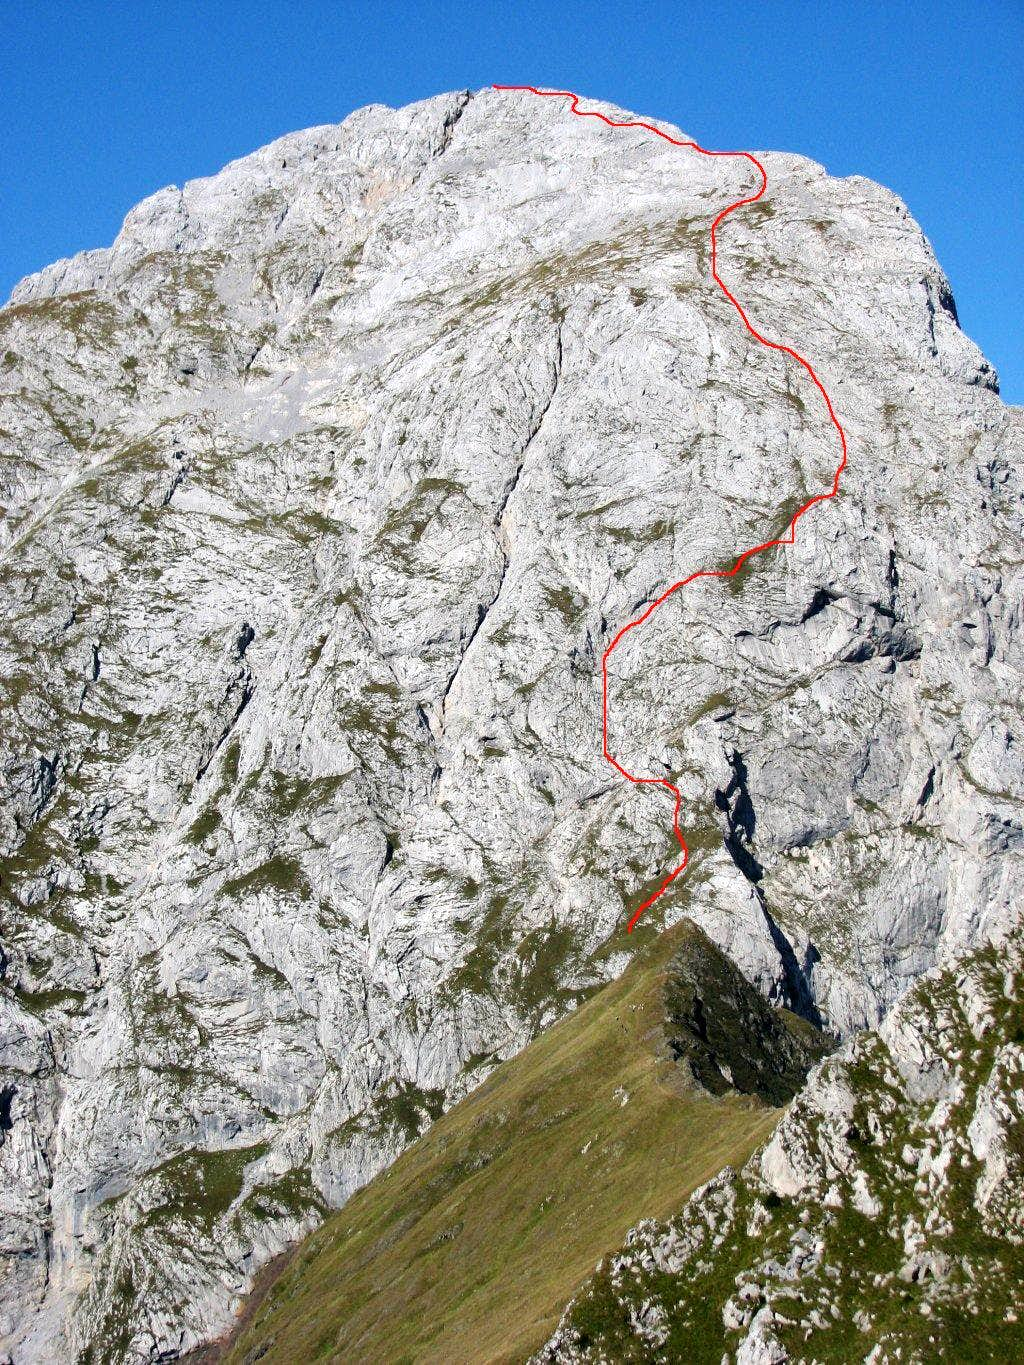 The scheme of the route over the east face and ridge.